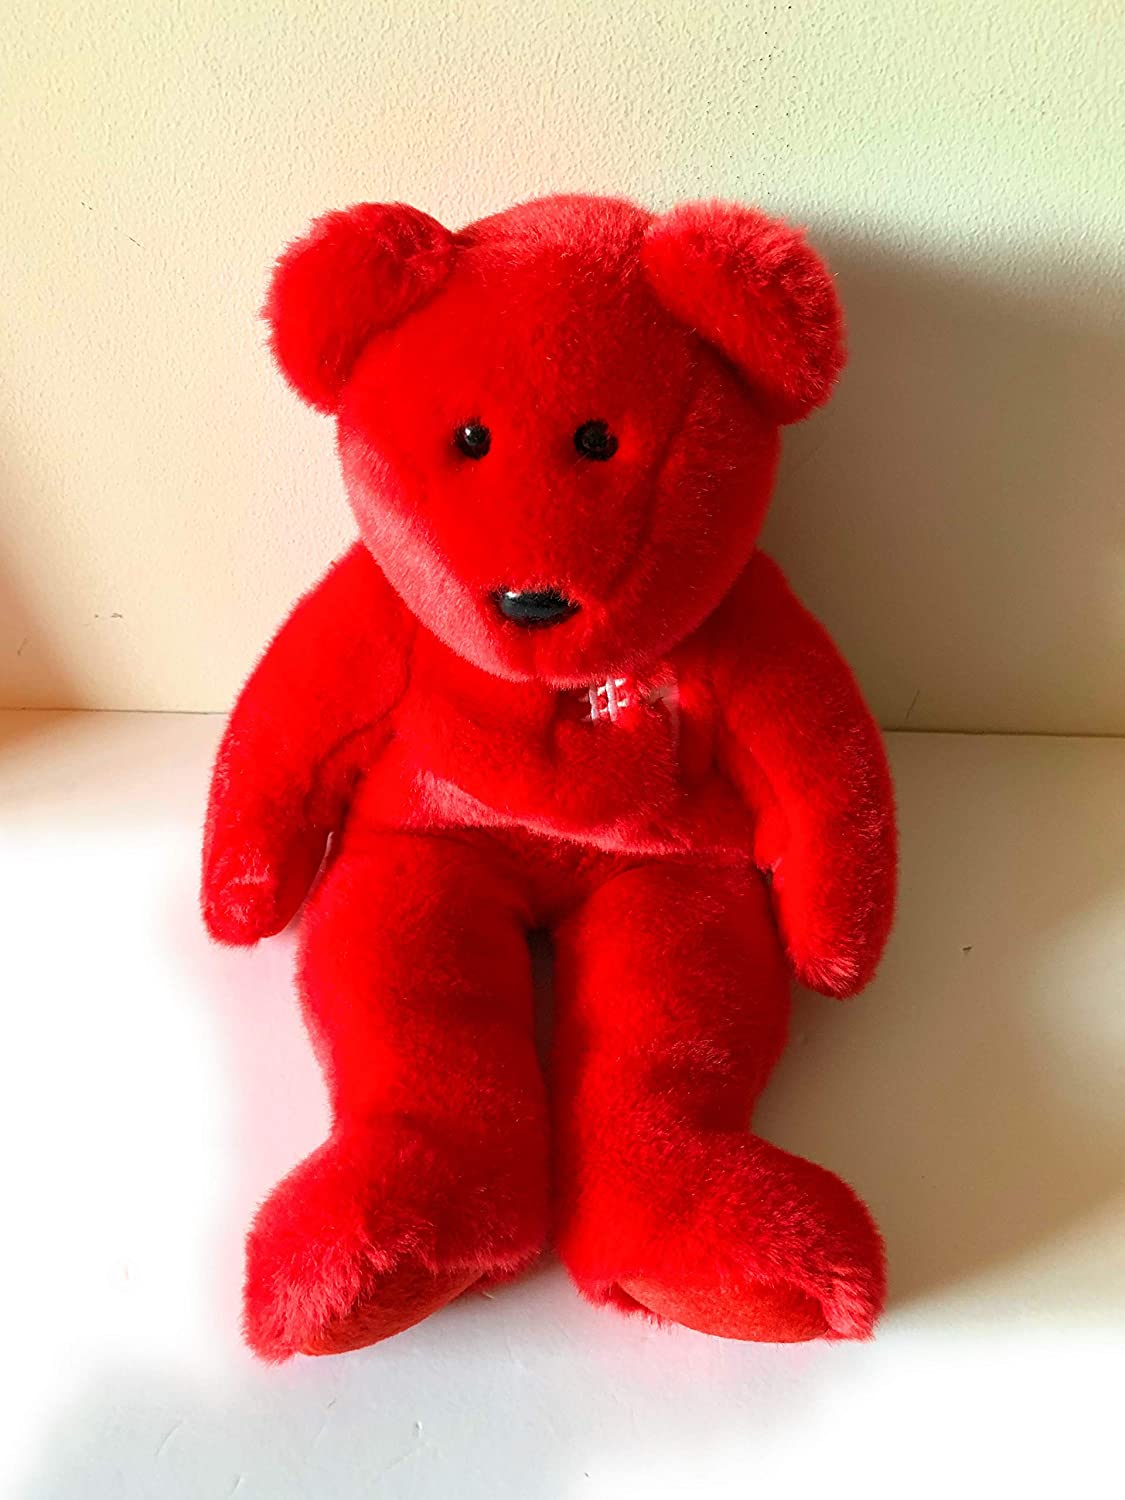 2 lbs sensory toy Weighted stuffed animal bear washable weighted buddy